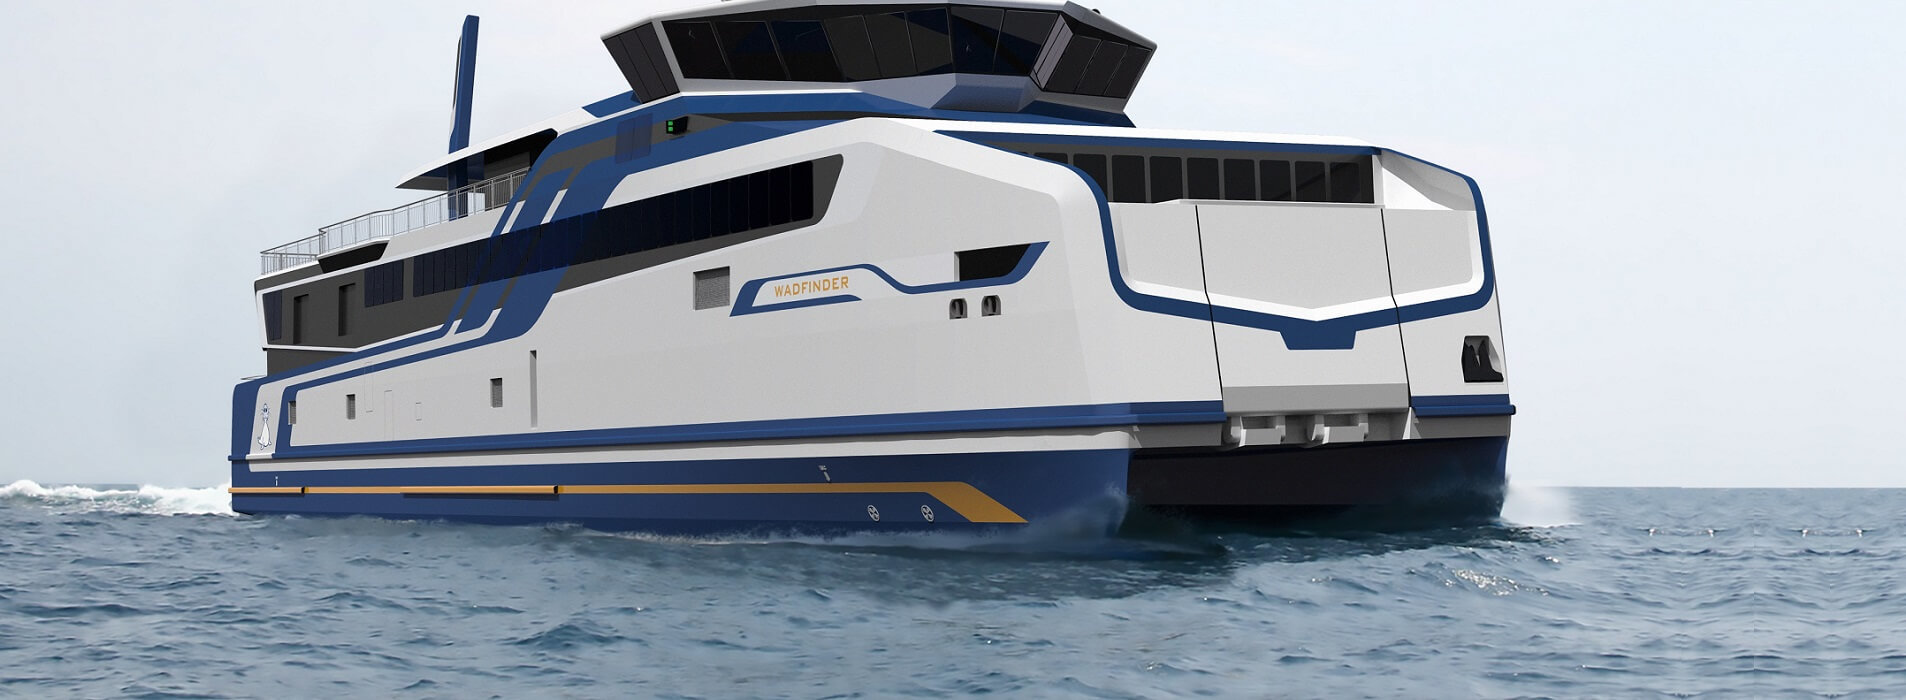 LNG Powered Ferries